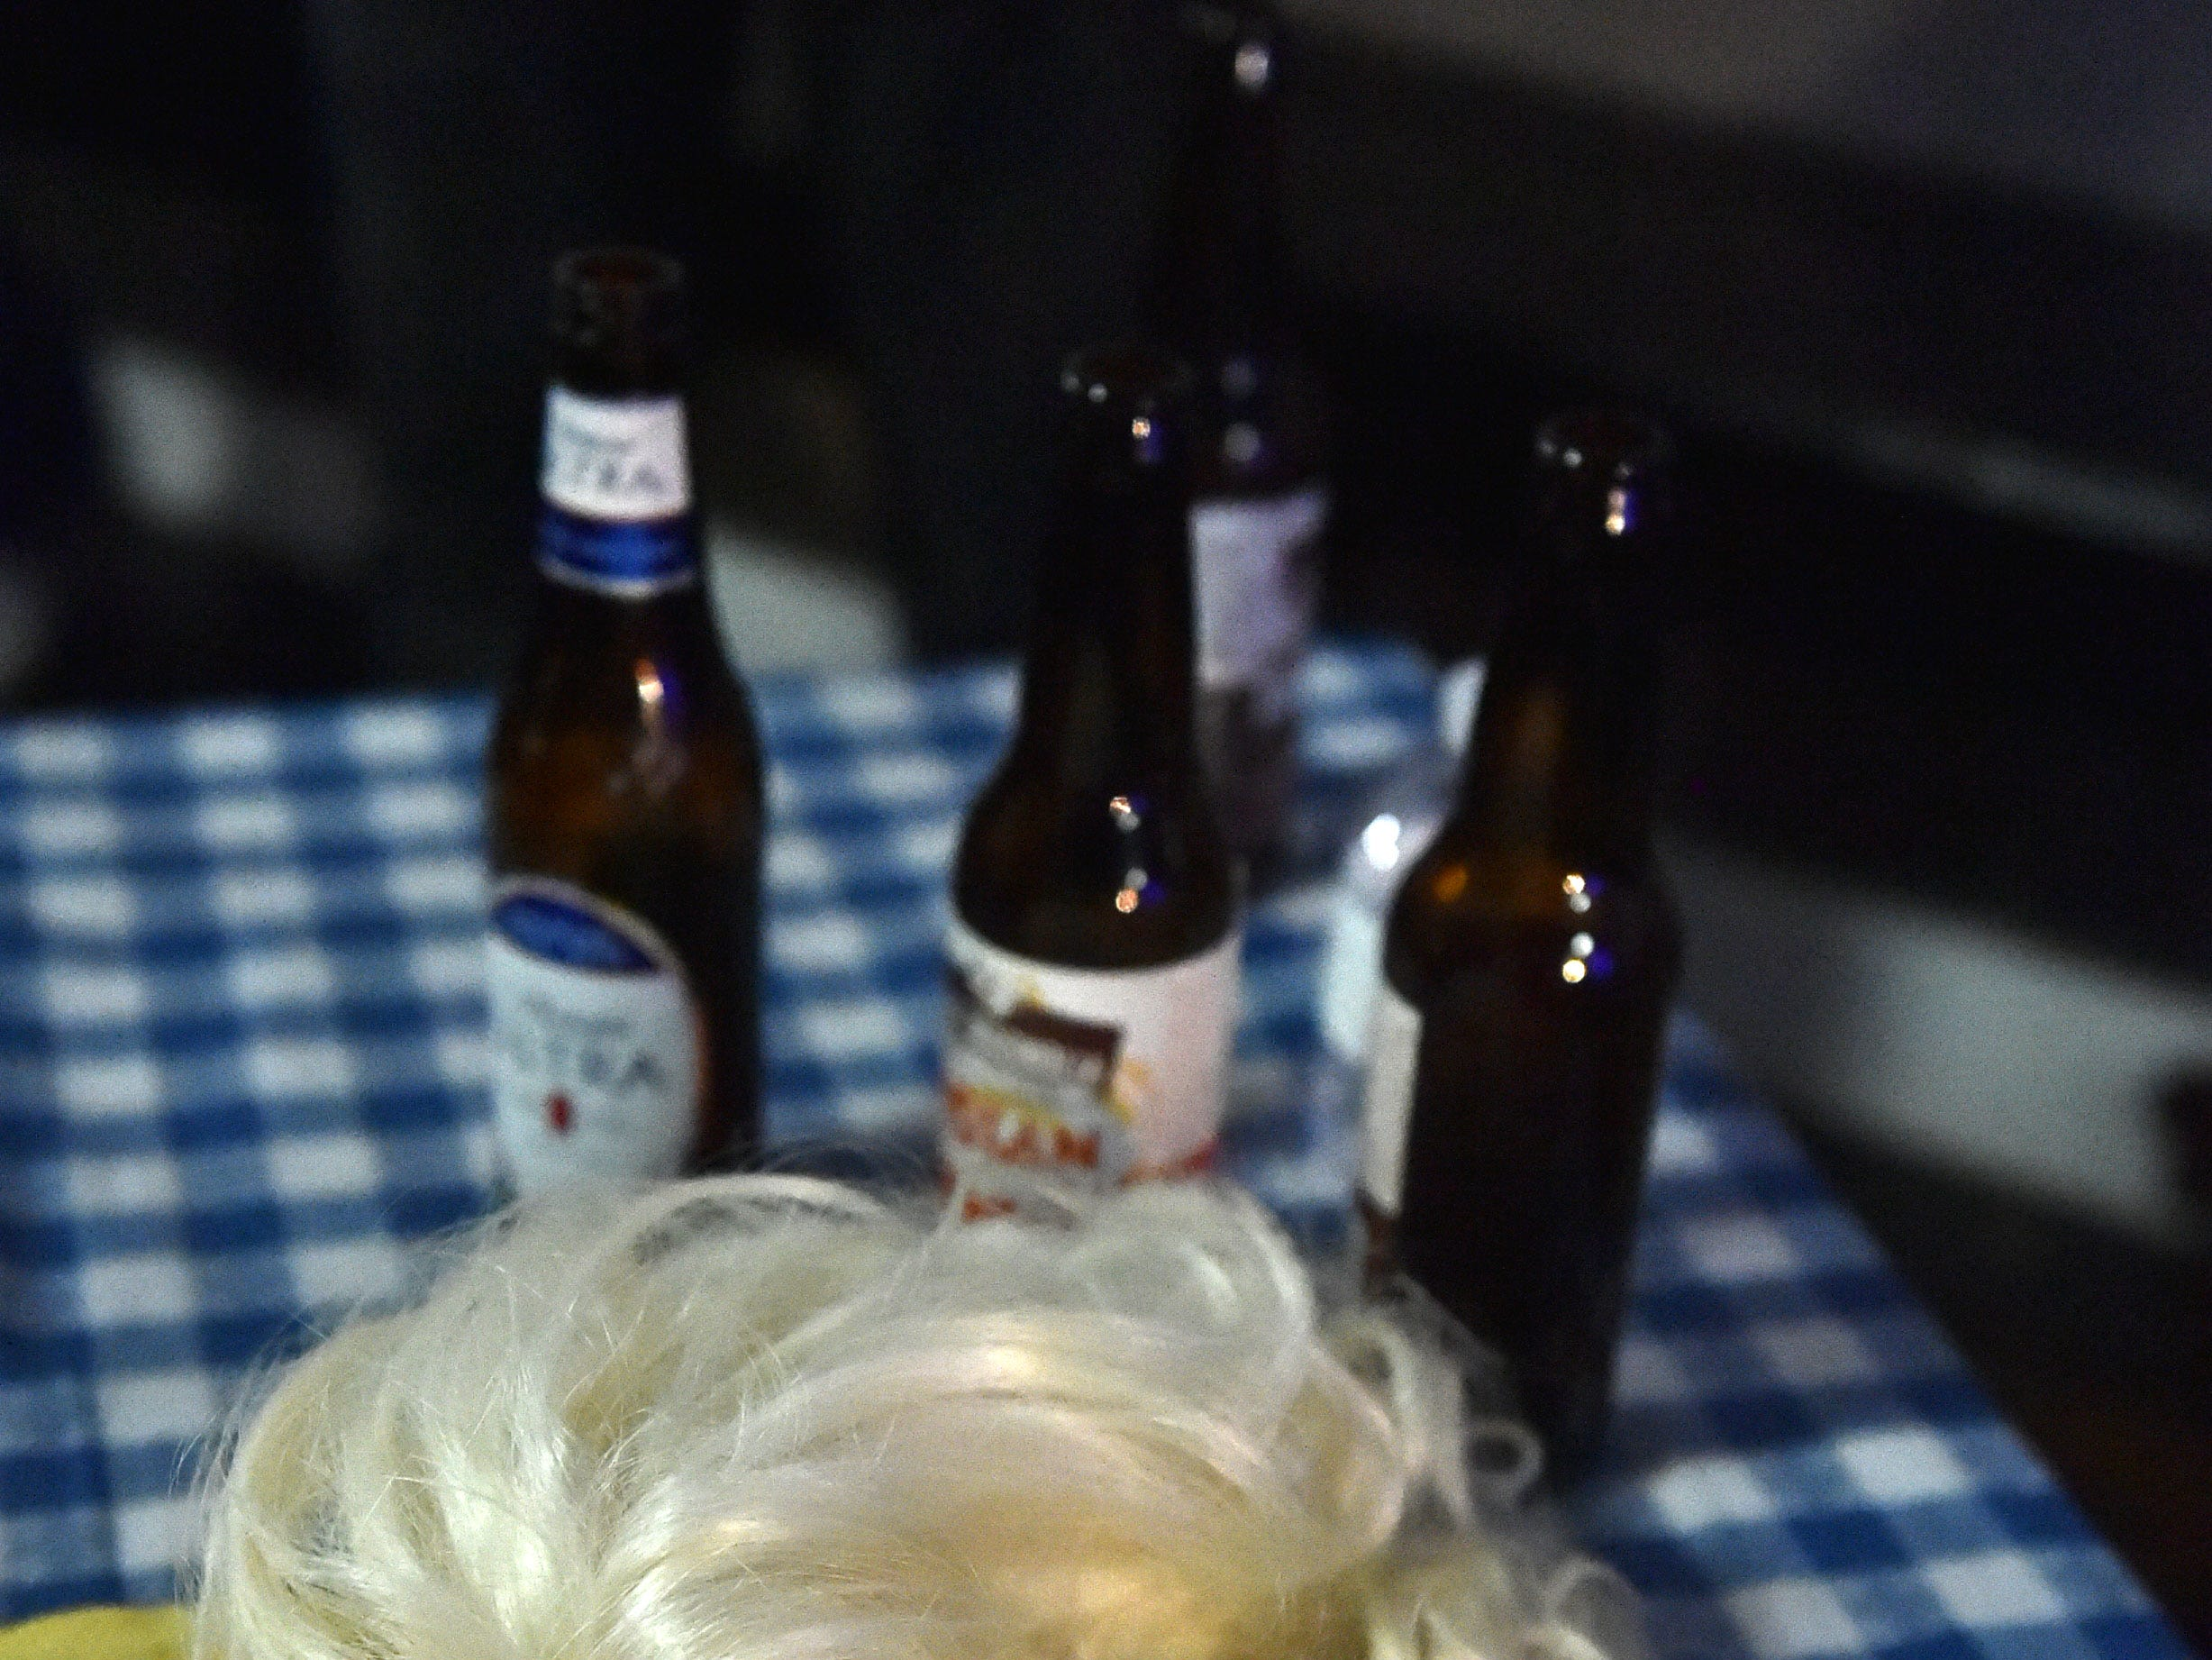 A contestant's wig sit discarded on a table at 4th annual Dolly Should afterparty held at 100 Men Hall in Bay St. Louis. Saturday, Jan. 12, 2019.